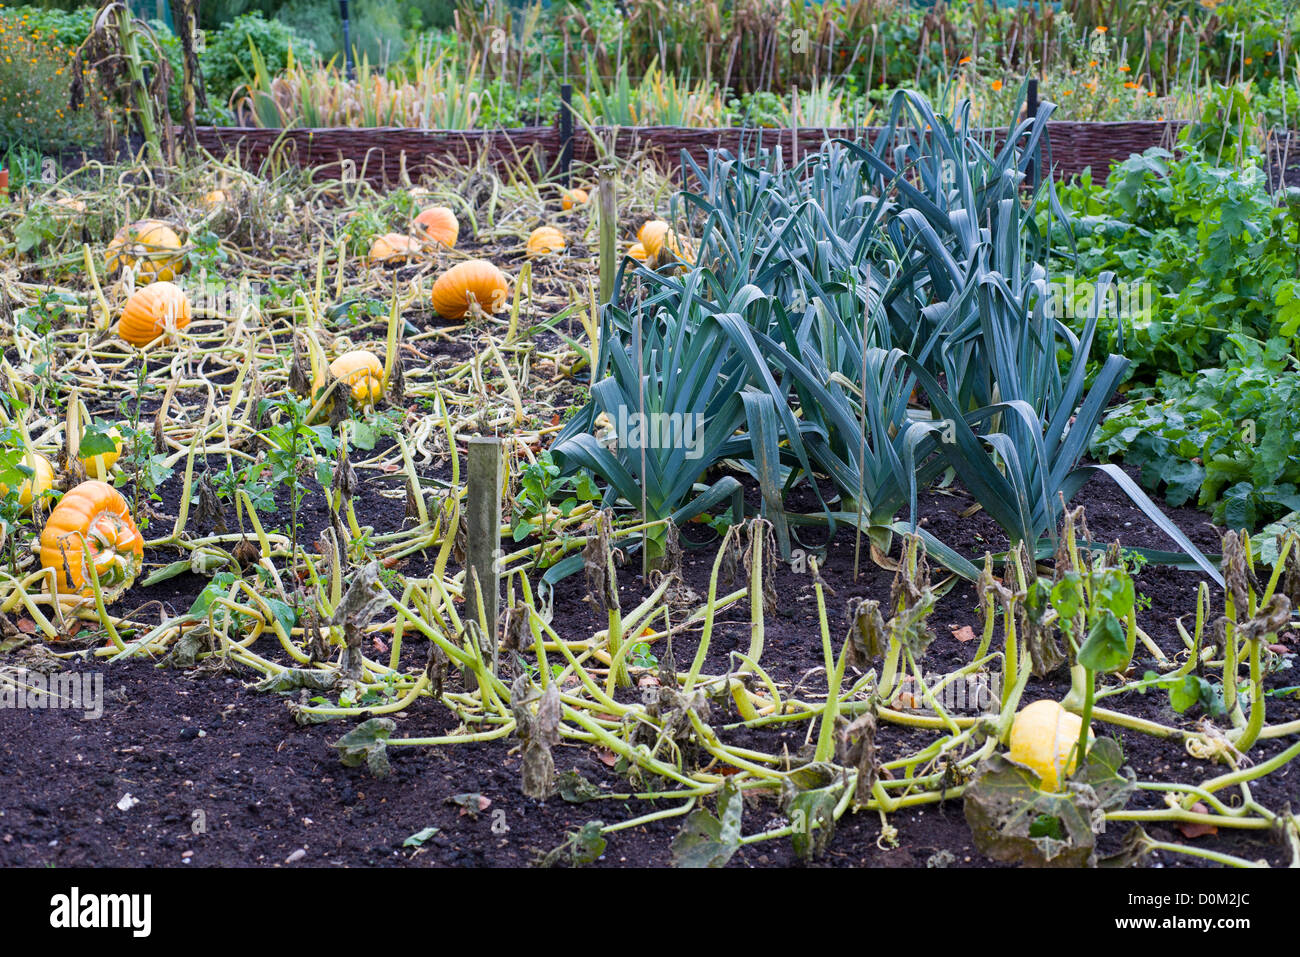 Autumn garden with pumpkins ready for harvest and leek bed - Stock Image